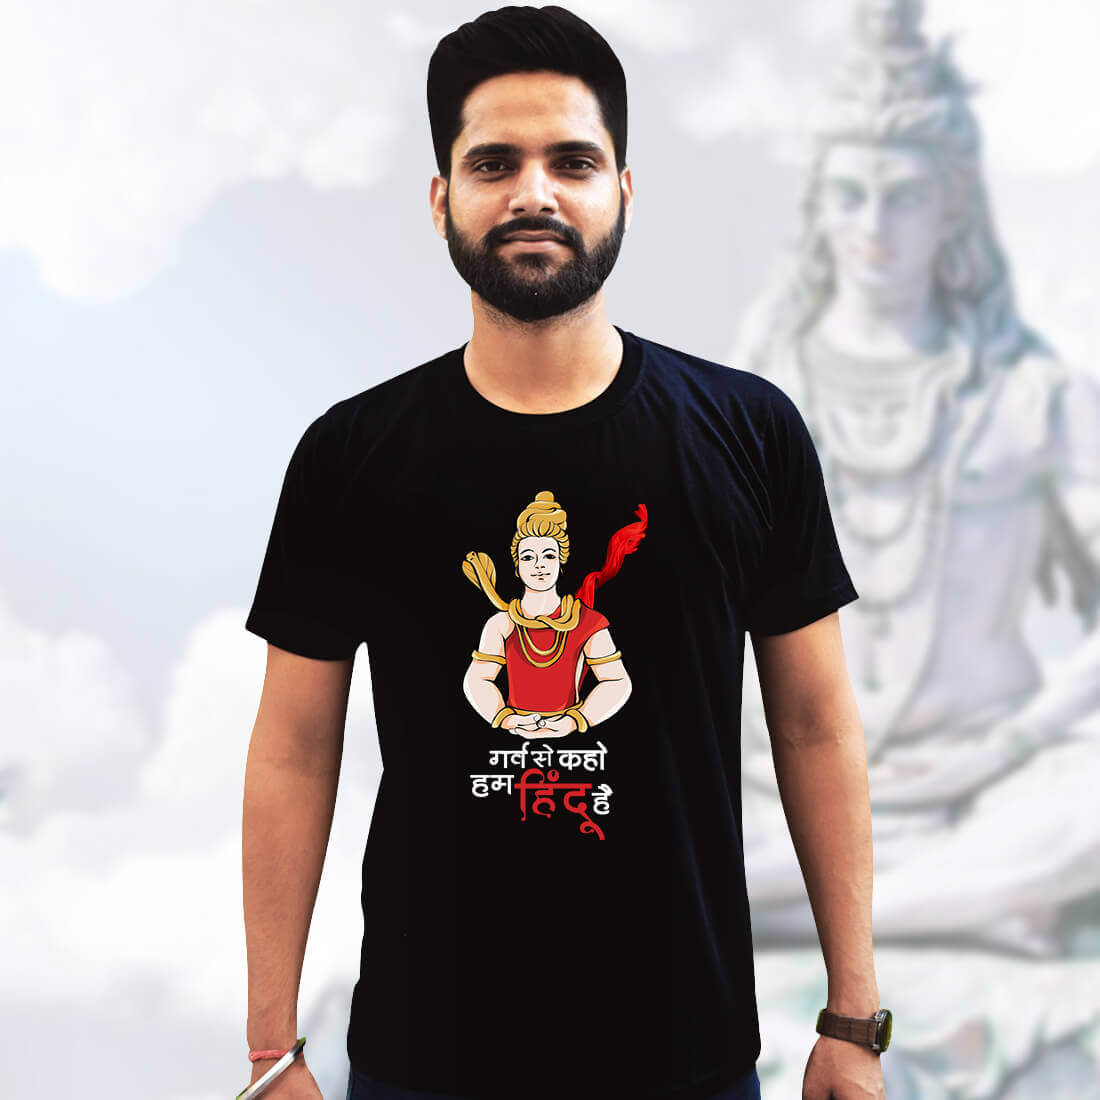 Best Hinduism Quote, Black T-Shirt Front and Back